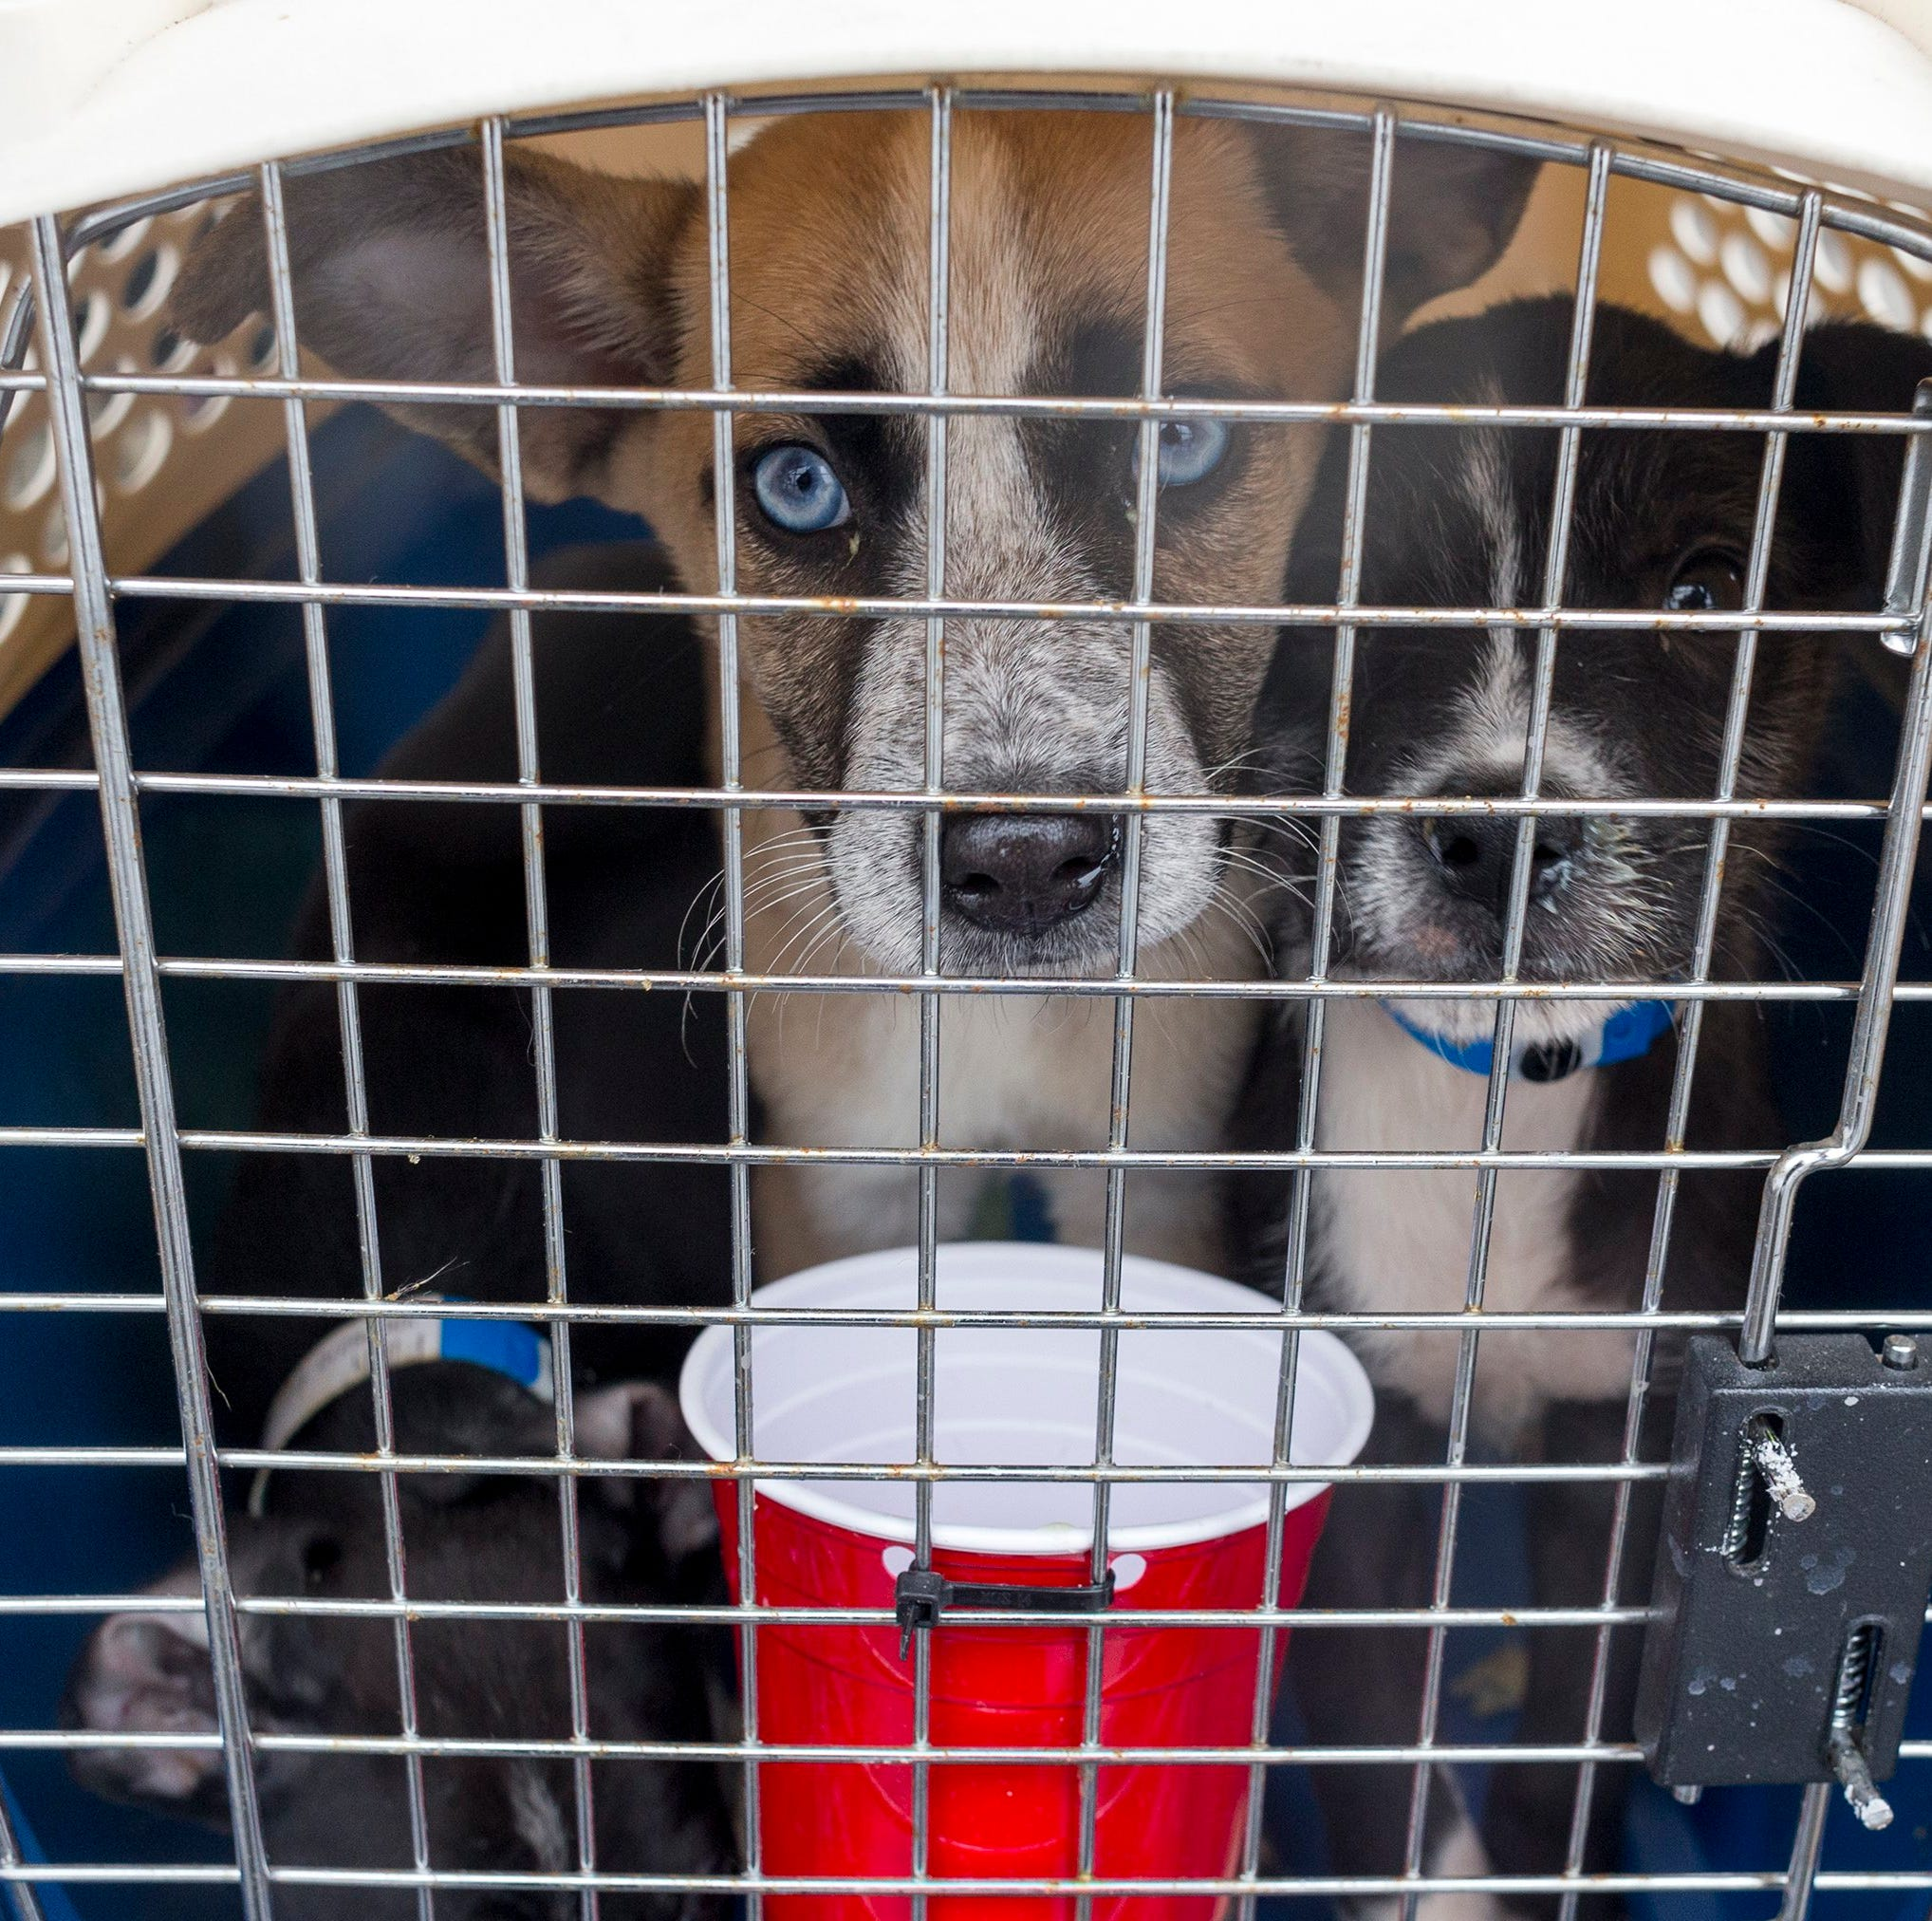 Giving Tuesday is a time when charities encourage contributions. But taxpayers need to understand the new tax rules, if they want to get a tax break for their charitable contributions. File photo: Three rescued puppies wait at Willow Run Airport to be transported to a Michigan humane society in April 2018.